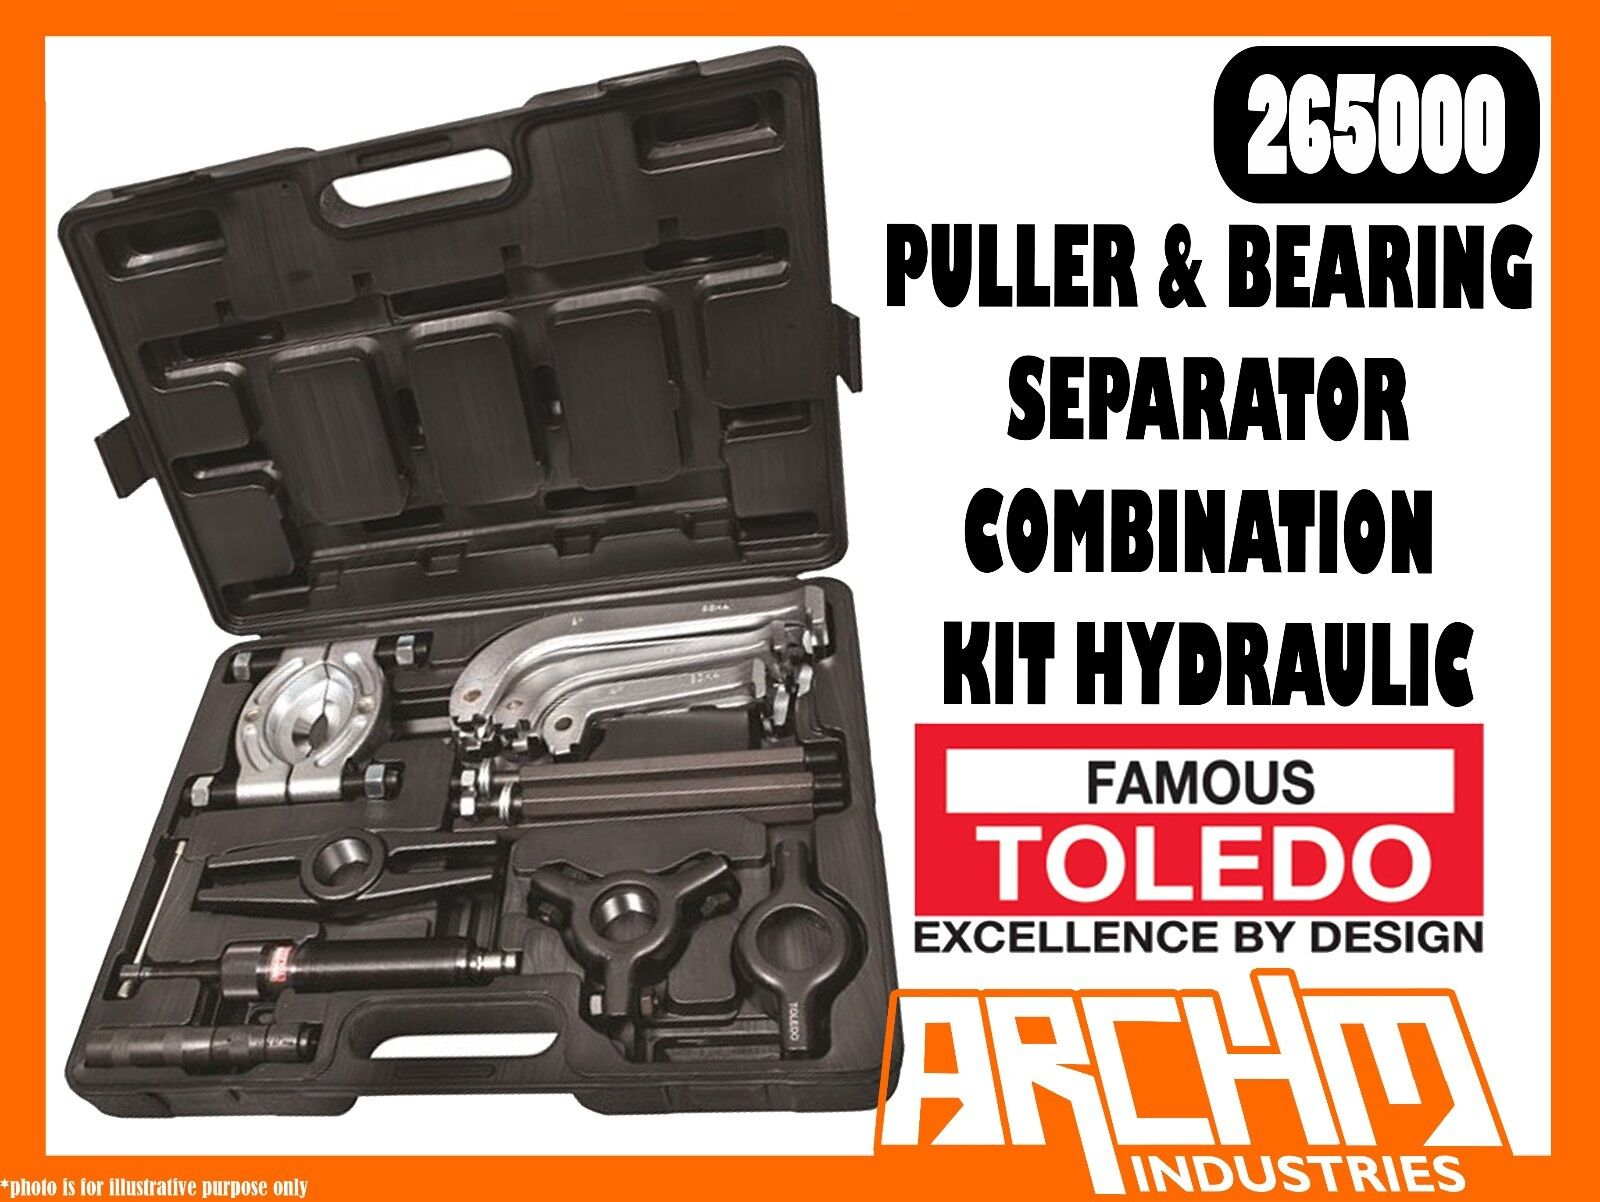 TOLEDO 265000 - PULLER & BEARING SEPARATOR COMBINATION KIT HYDRAULIC - UNIVERSAL